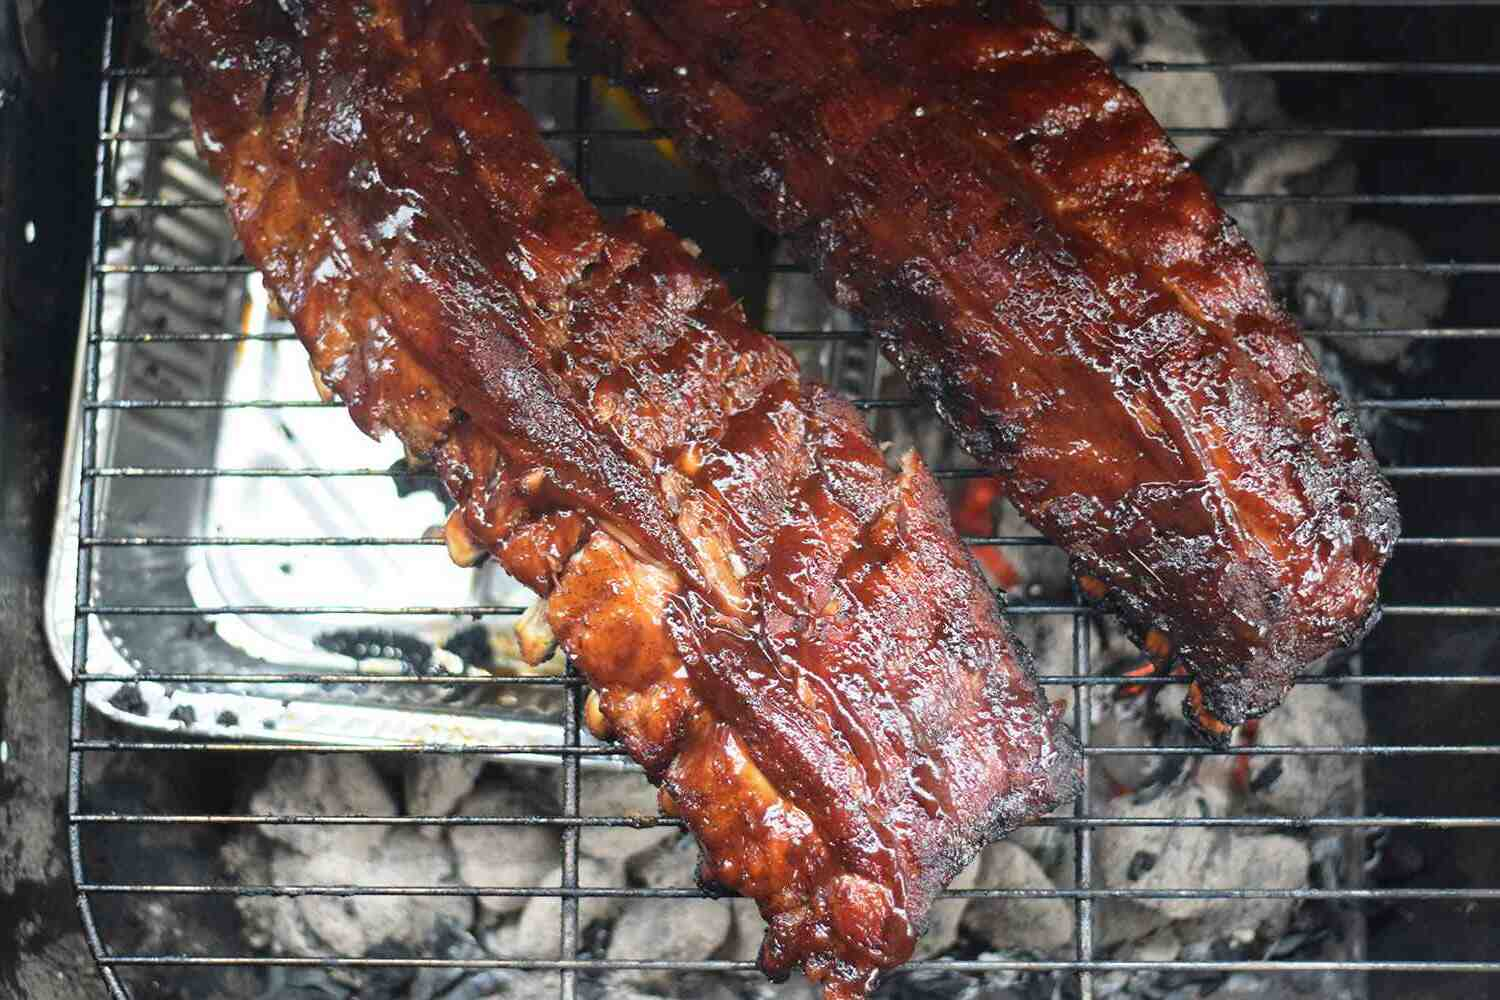 How to grill barbecue ribs